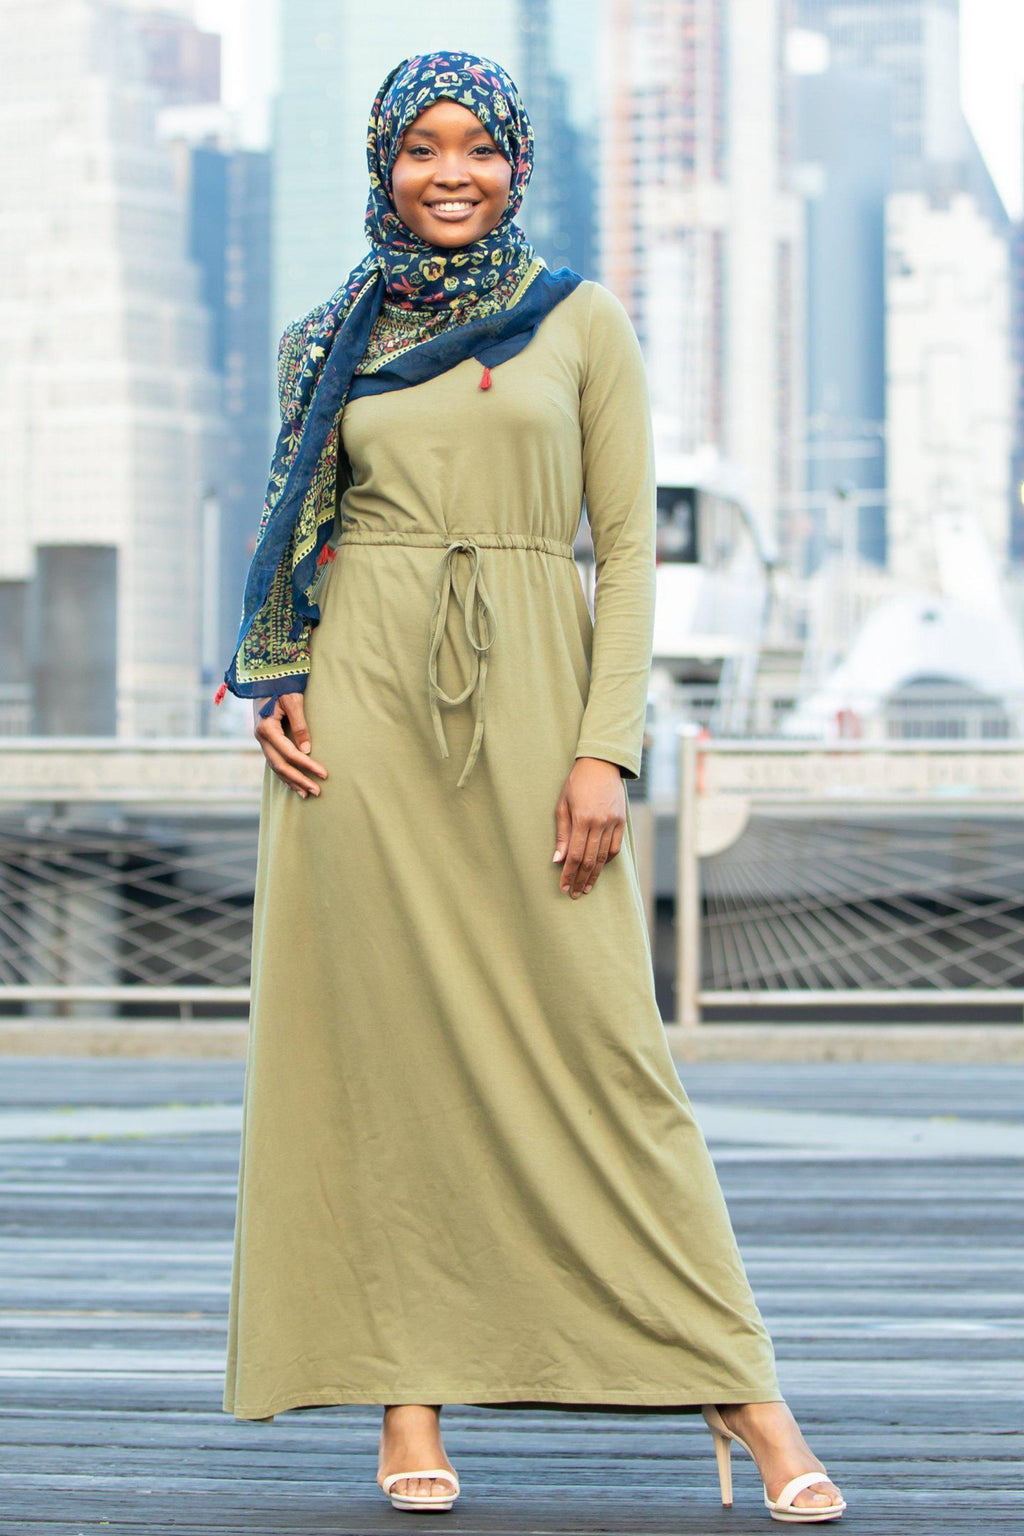 Sage Green Drawstring Cotton Long Sleeve Maxi Dress - Abaya, Hijabs, Jilbabs, on sale now at UrbanModesty.com